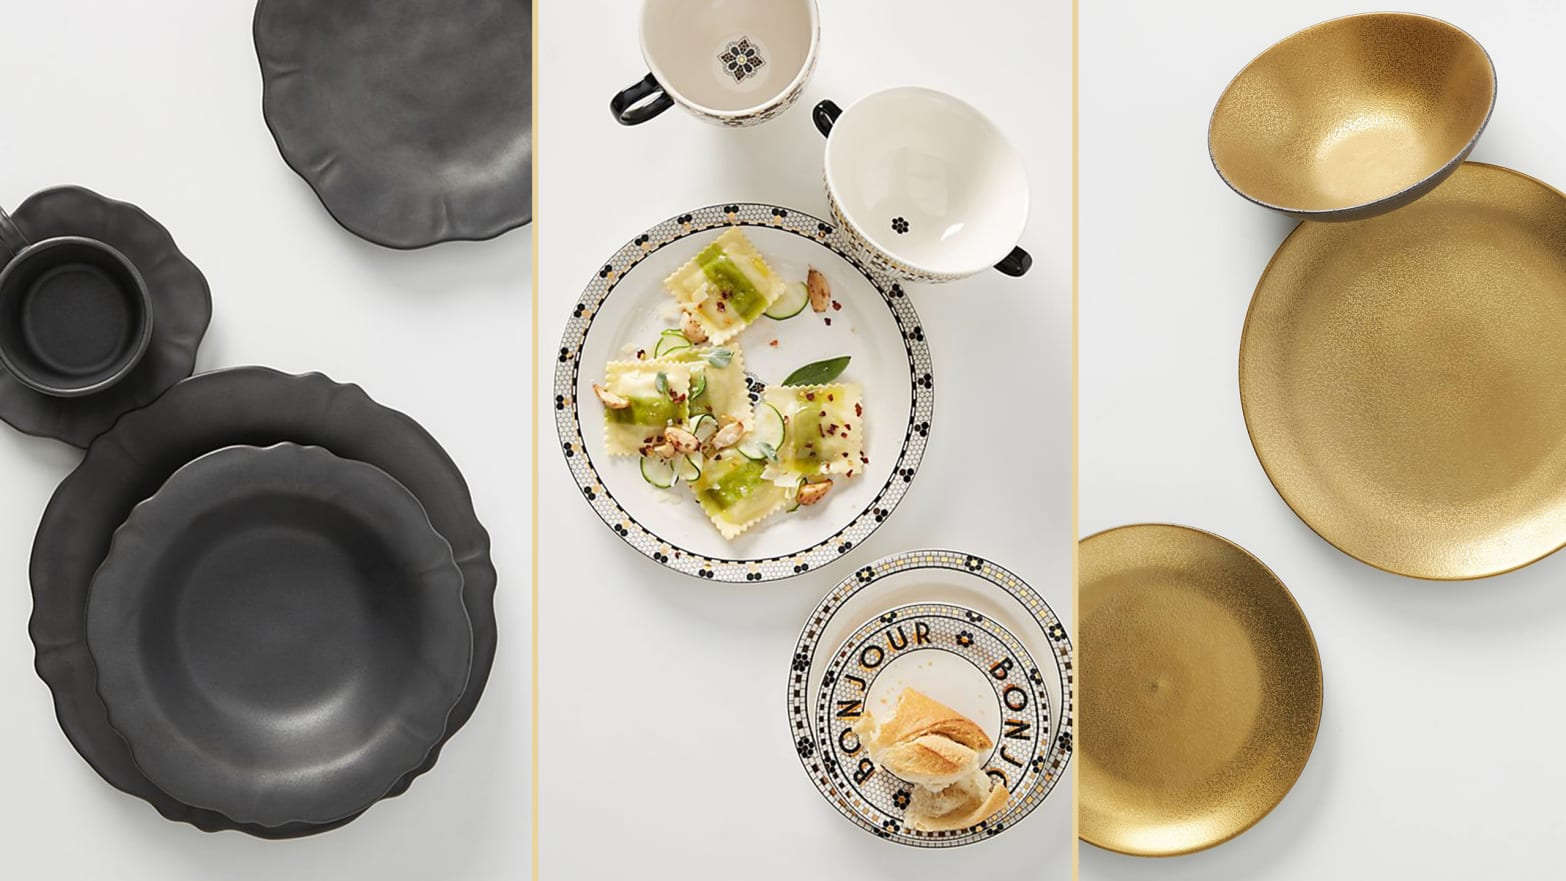 Anthropologie Just Added Hundreds of Fall Home Goods. Here Are Their Best Dinnerware Sets.